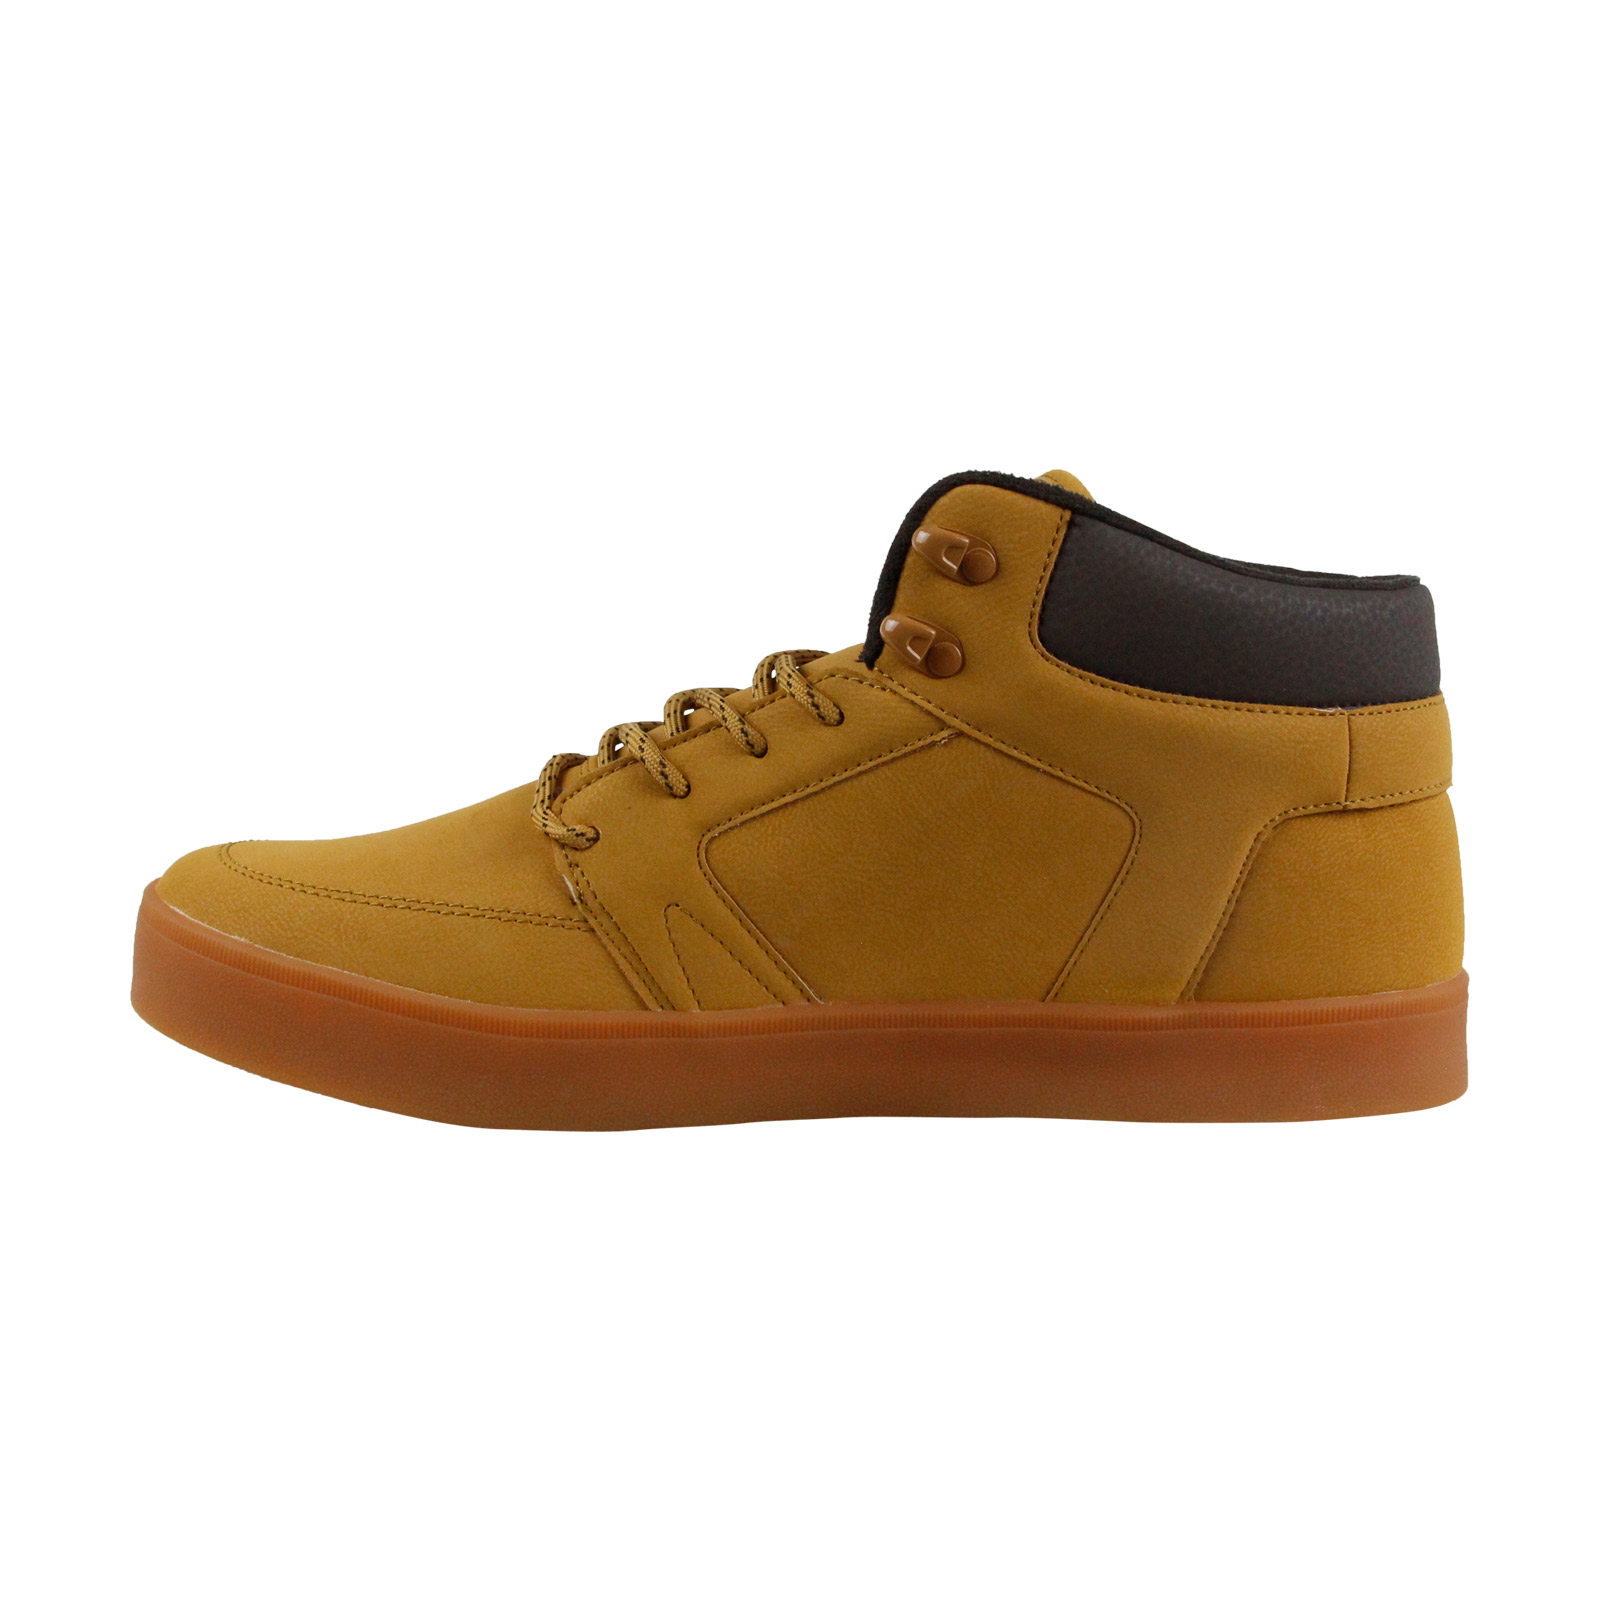 Osiris Leder Helix  Uomo Tan Leder Osiris Lace Up Sneakers Schuhes b3ff41